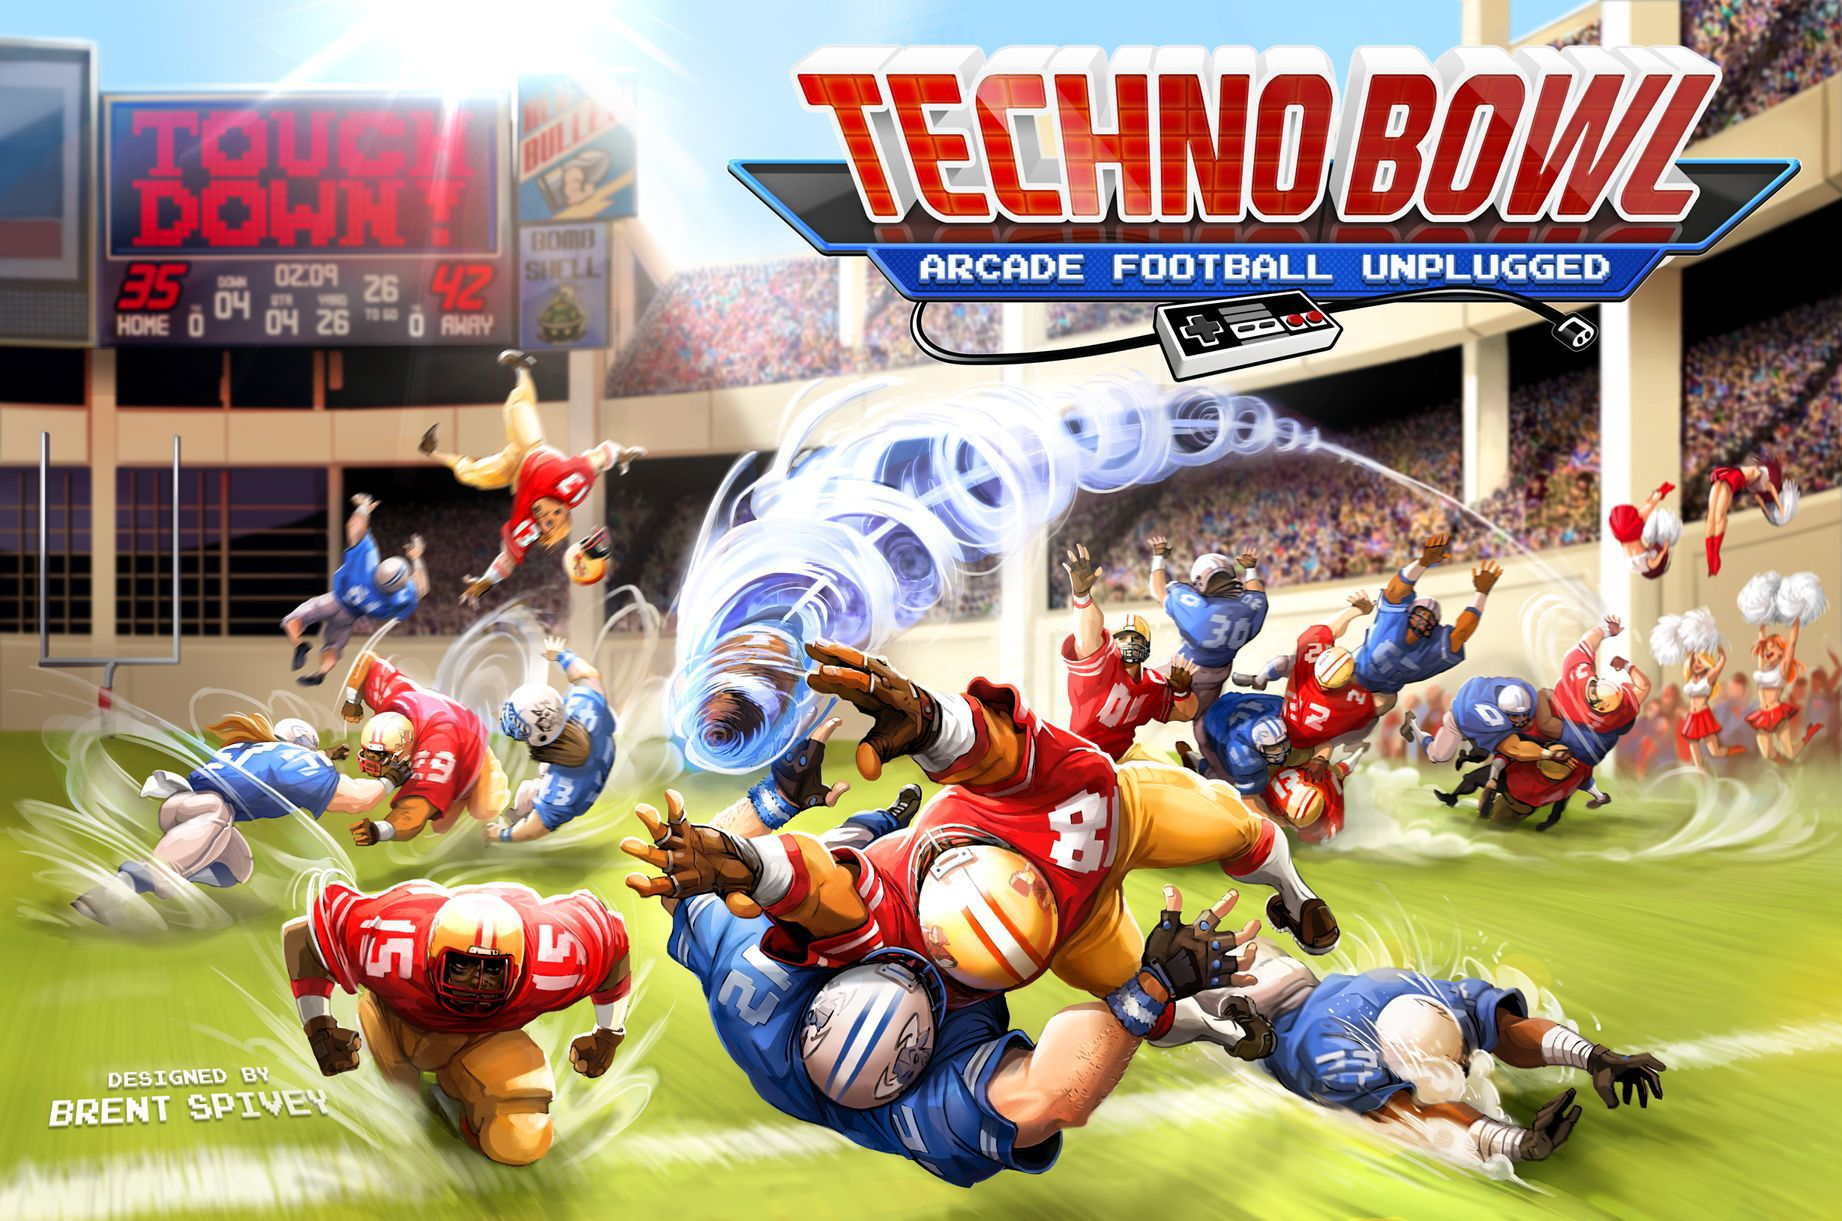 Techno Bowl: Arcade Football Unplugged